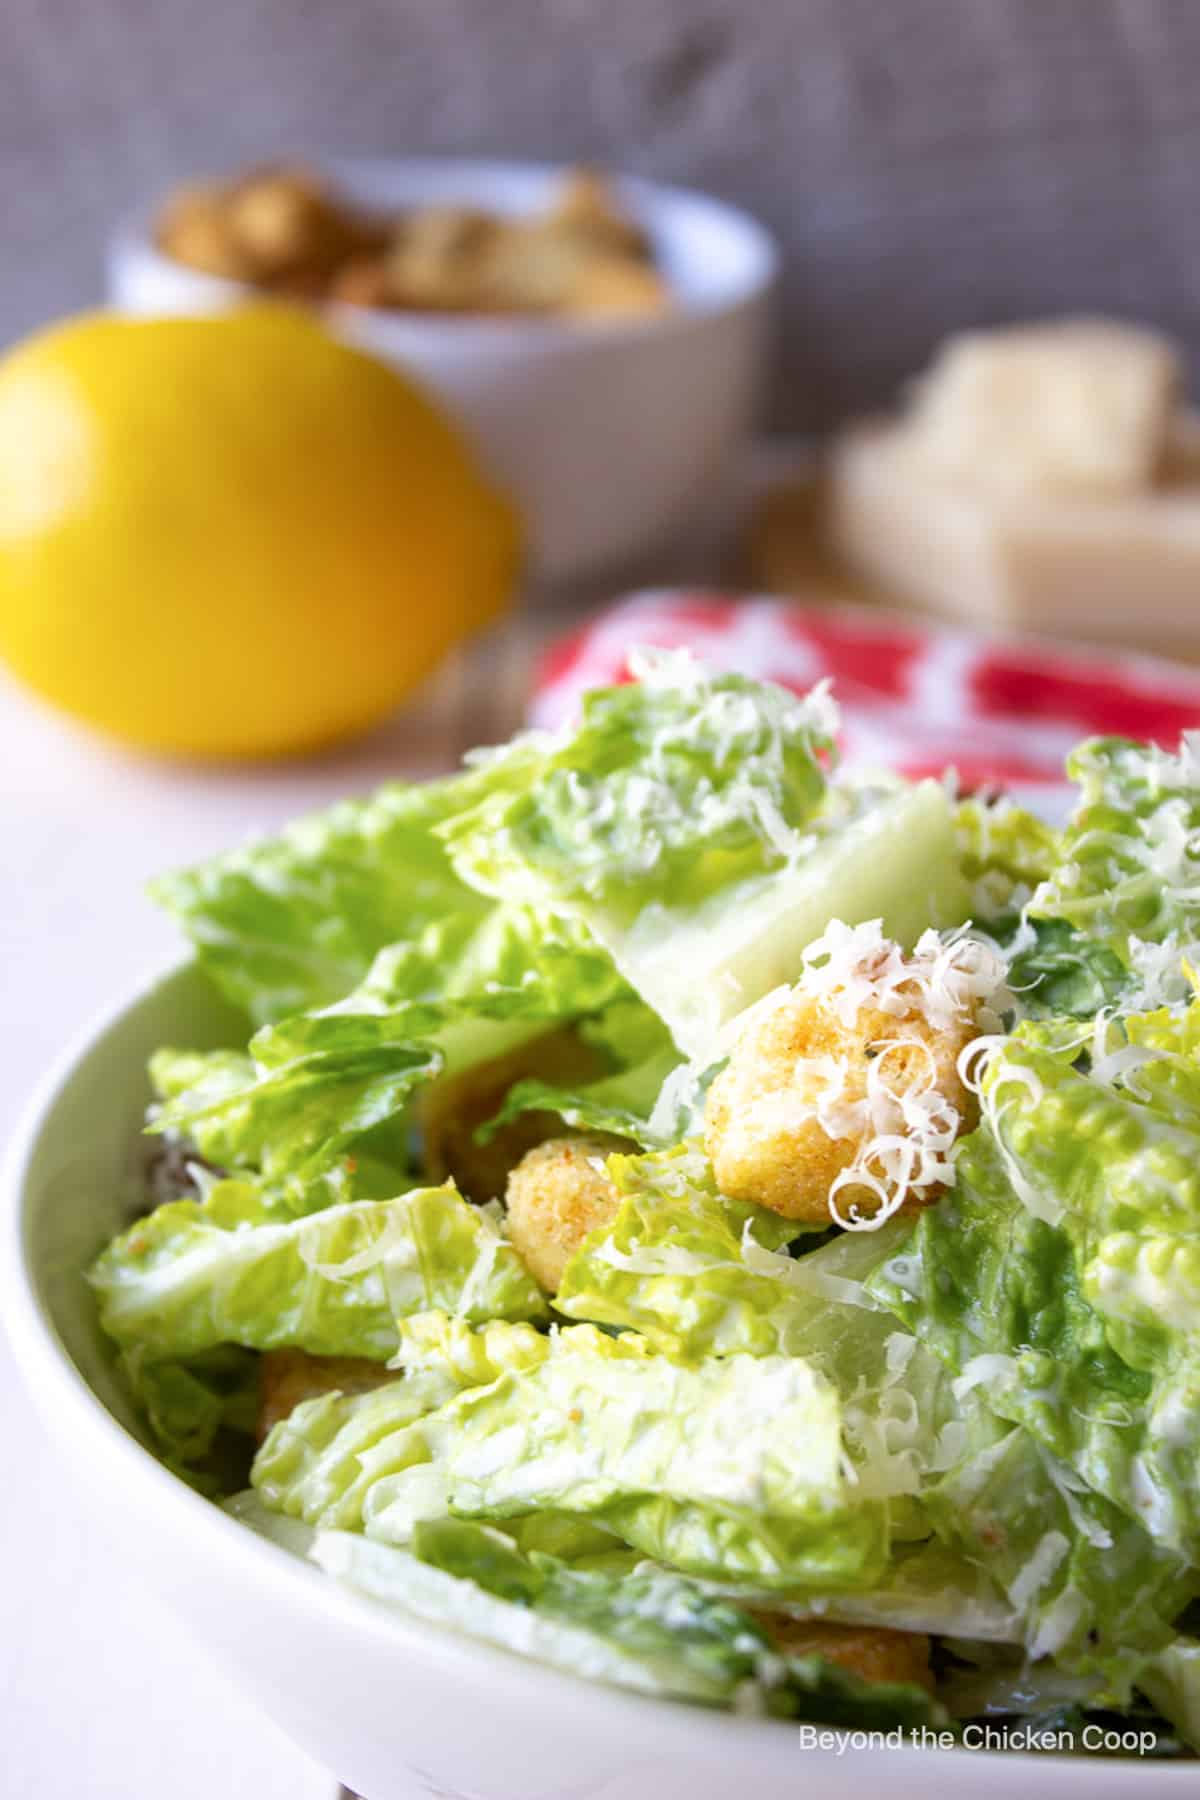 A green salad with croutons and shredded cheese in a white bowl.